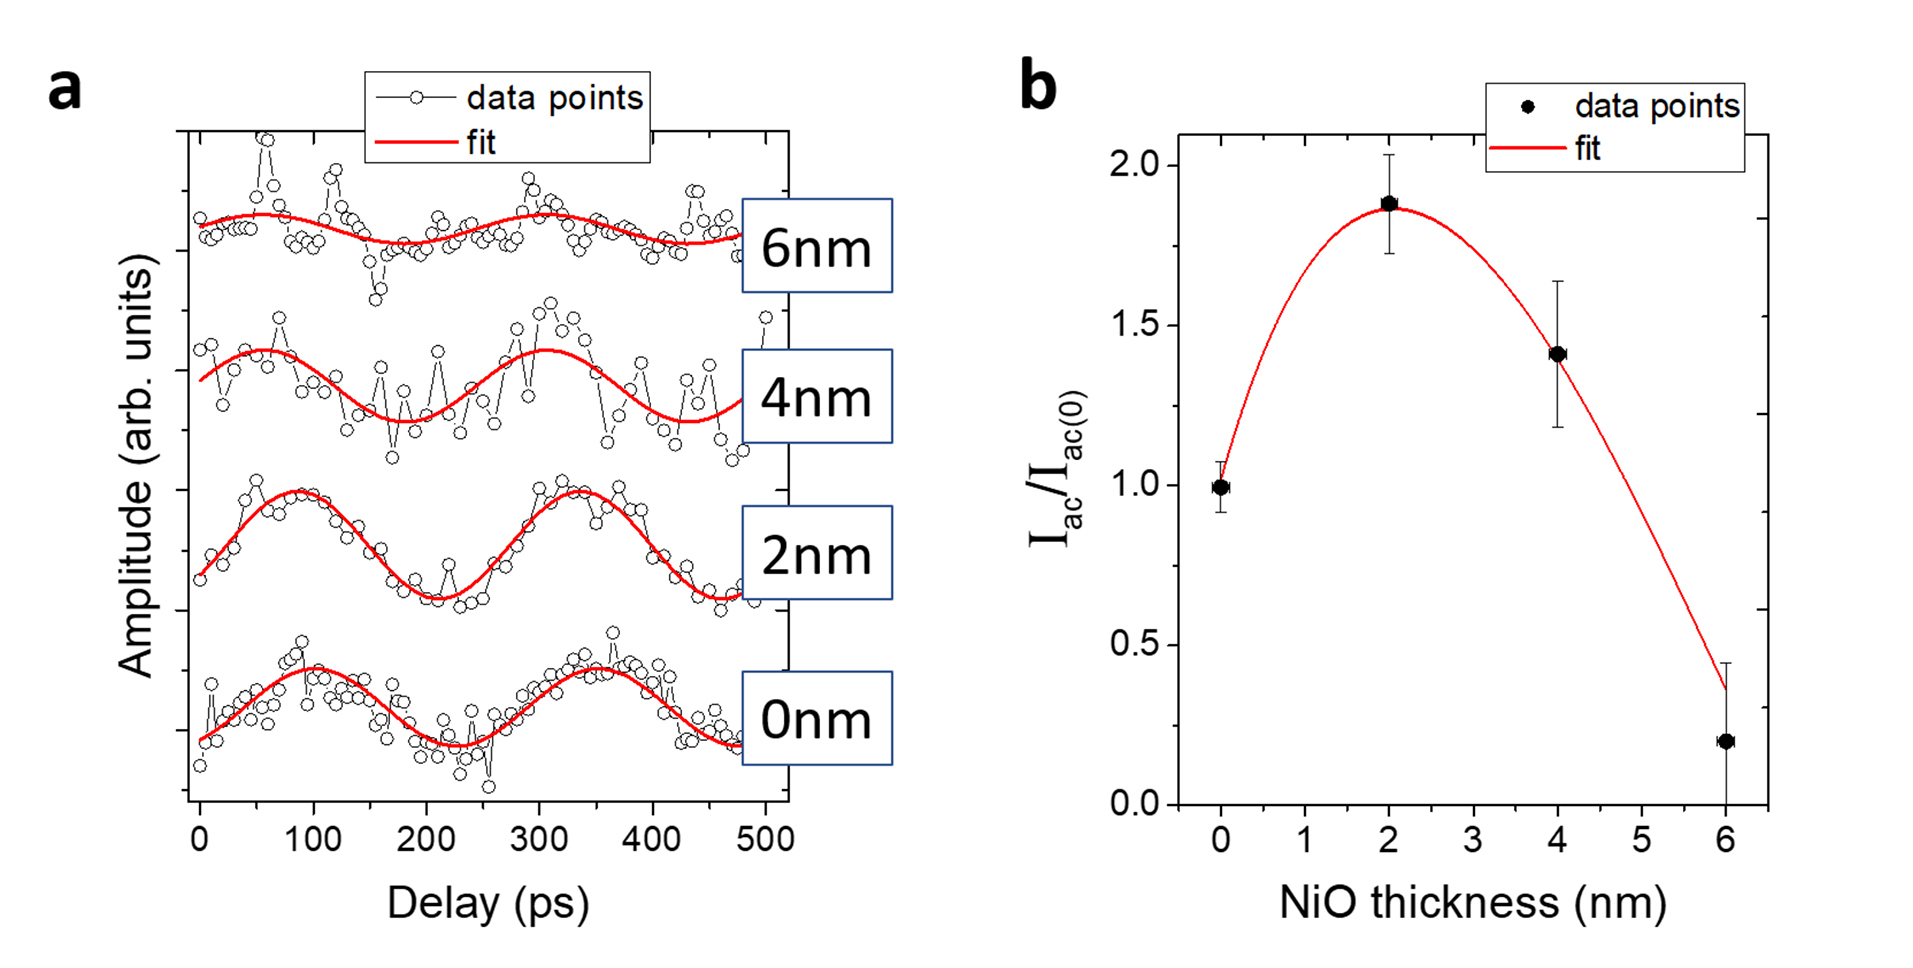 (a) Graph showing four stacked curves, with open black circles for the data points and solid red lines indicating the sinusoidal fit. All four have roughly the same period, but different amplitudes. (b) Graph of the spin-current transmission efficiency versus NiO thickness, with four data points corresponding to each curve from (a) and a solid red line through them showing the fit, with a maximum at a thickness of 2 nanometers.